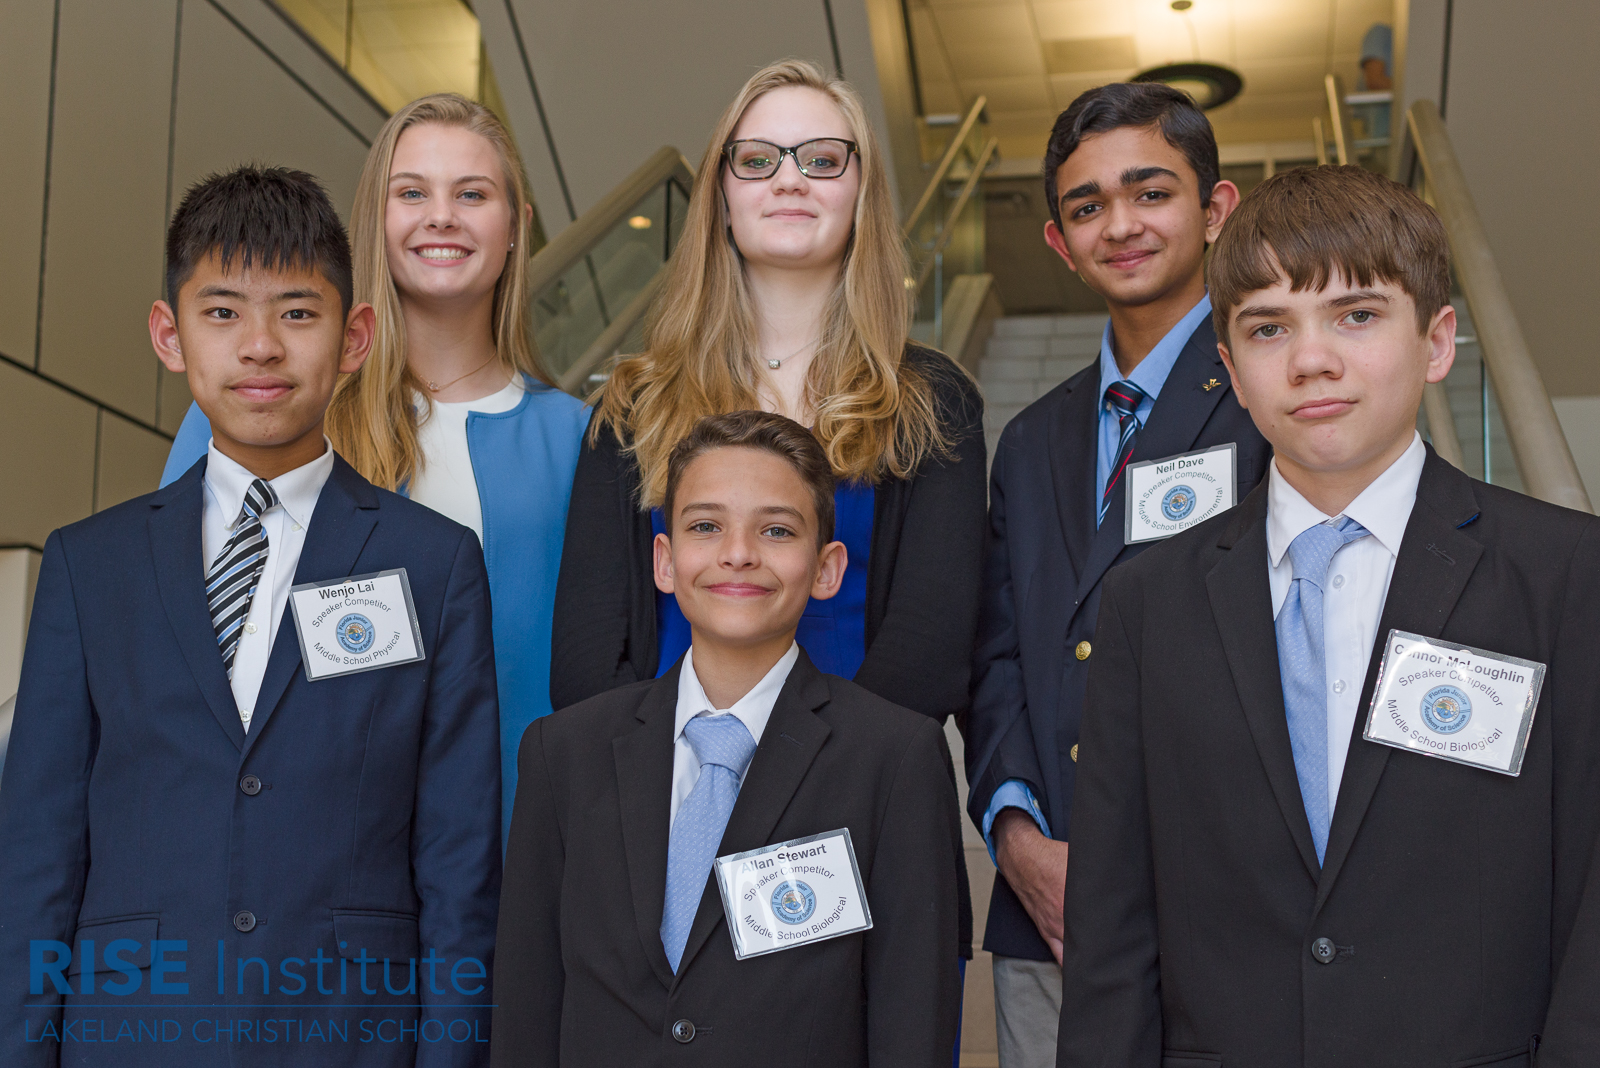 Research competition presenters at the Florida Junior Academy of Science